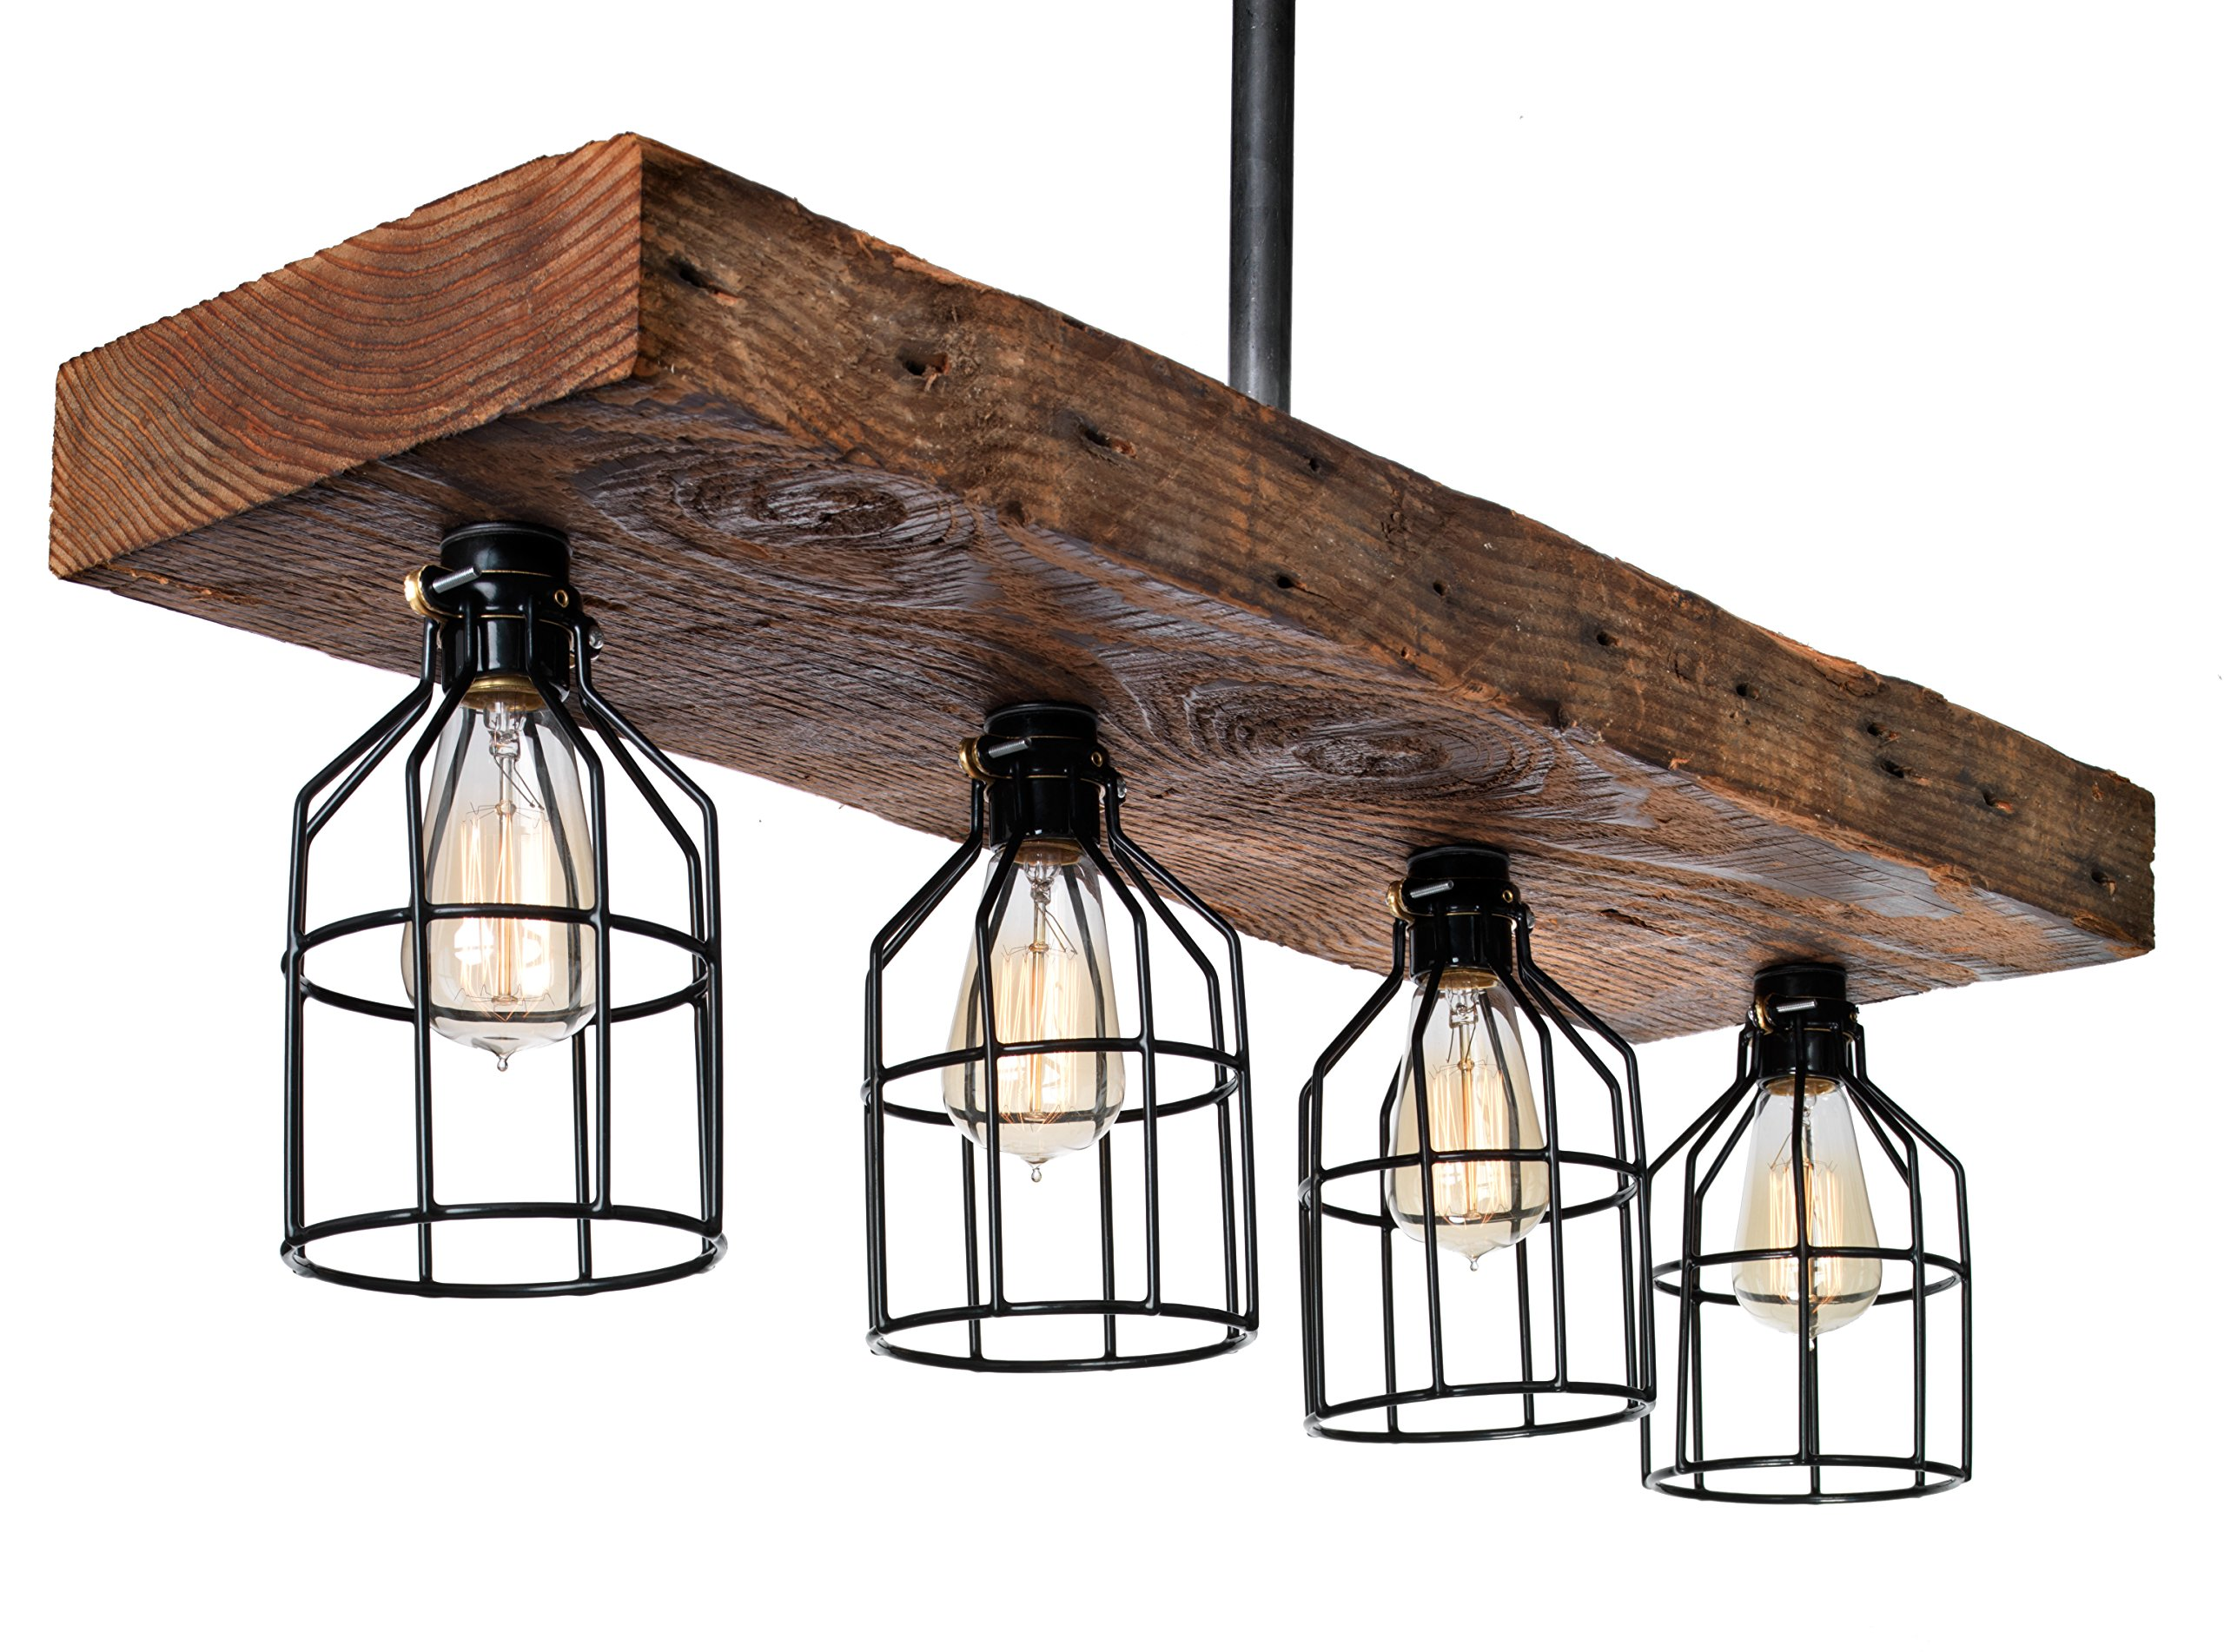 LIMITED SUPPLY - Farmhouse Style Reclaimed Wood Beam Rustic Decor Chandelier Light - Early 1900's Wood Hand Crafted in the USA (Reclaimed Wood)